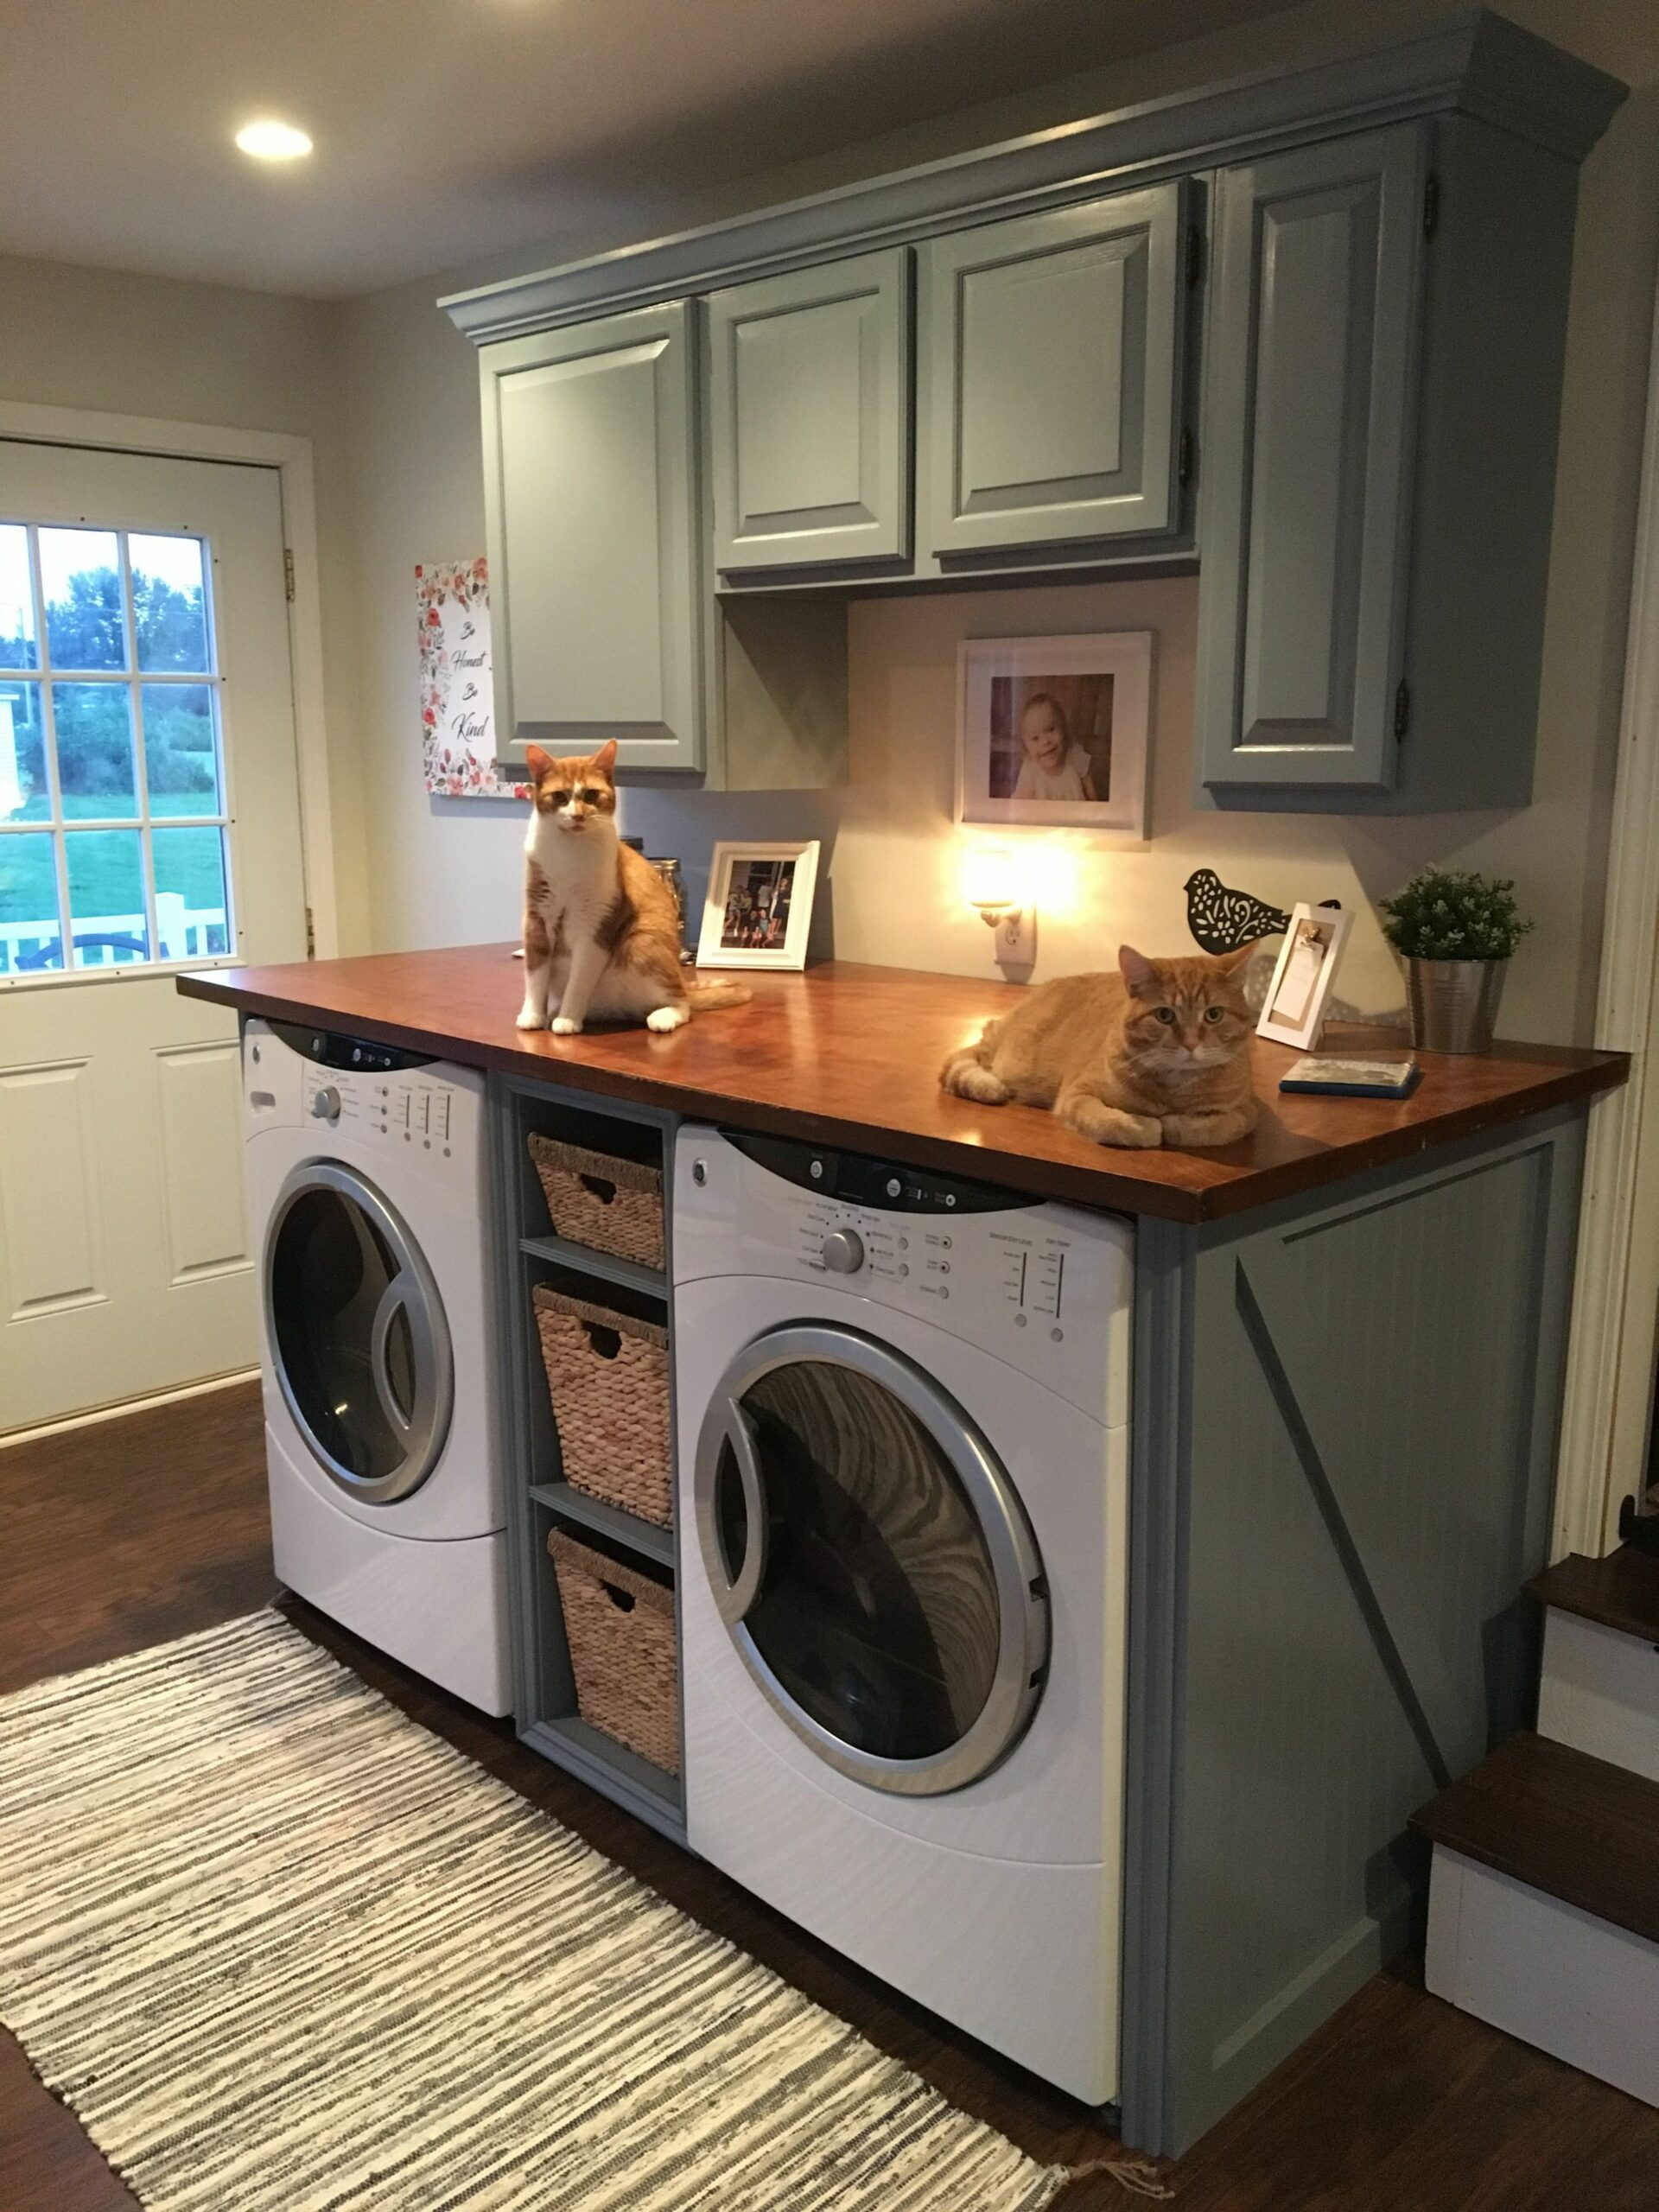 Love my laundry room! | Laundry room design, Laundry room remodel ..